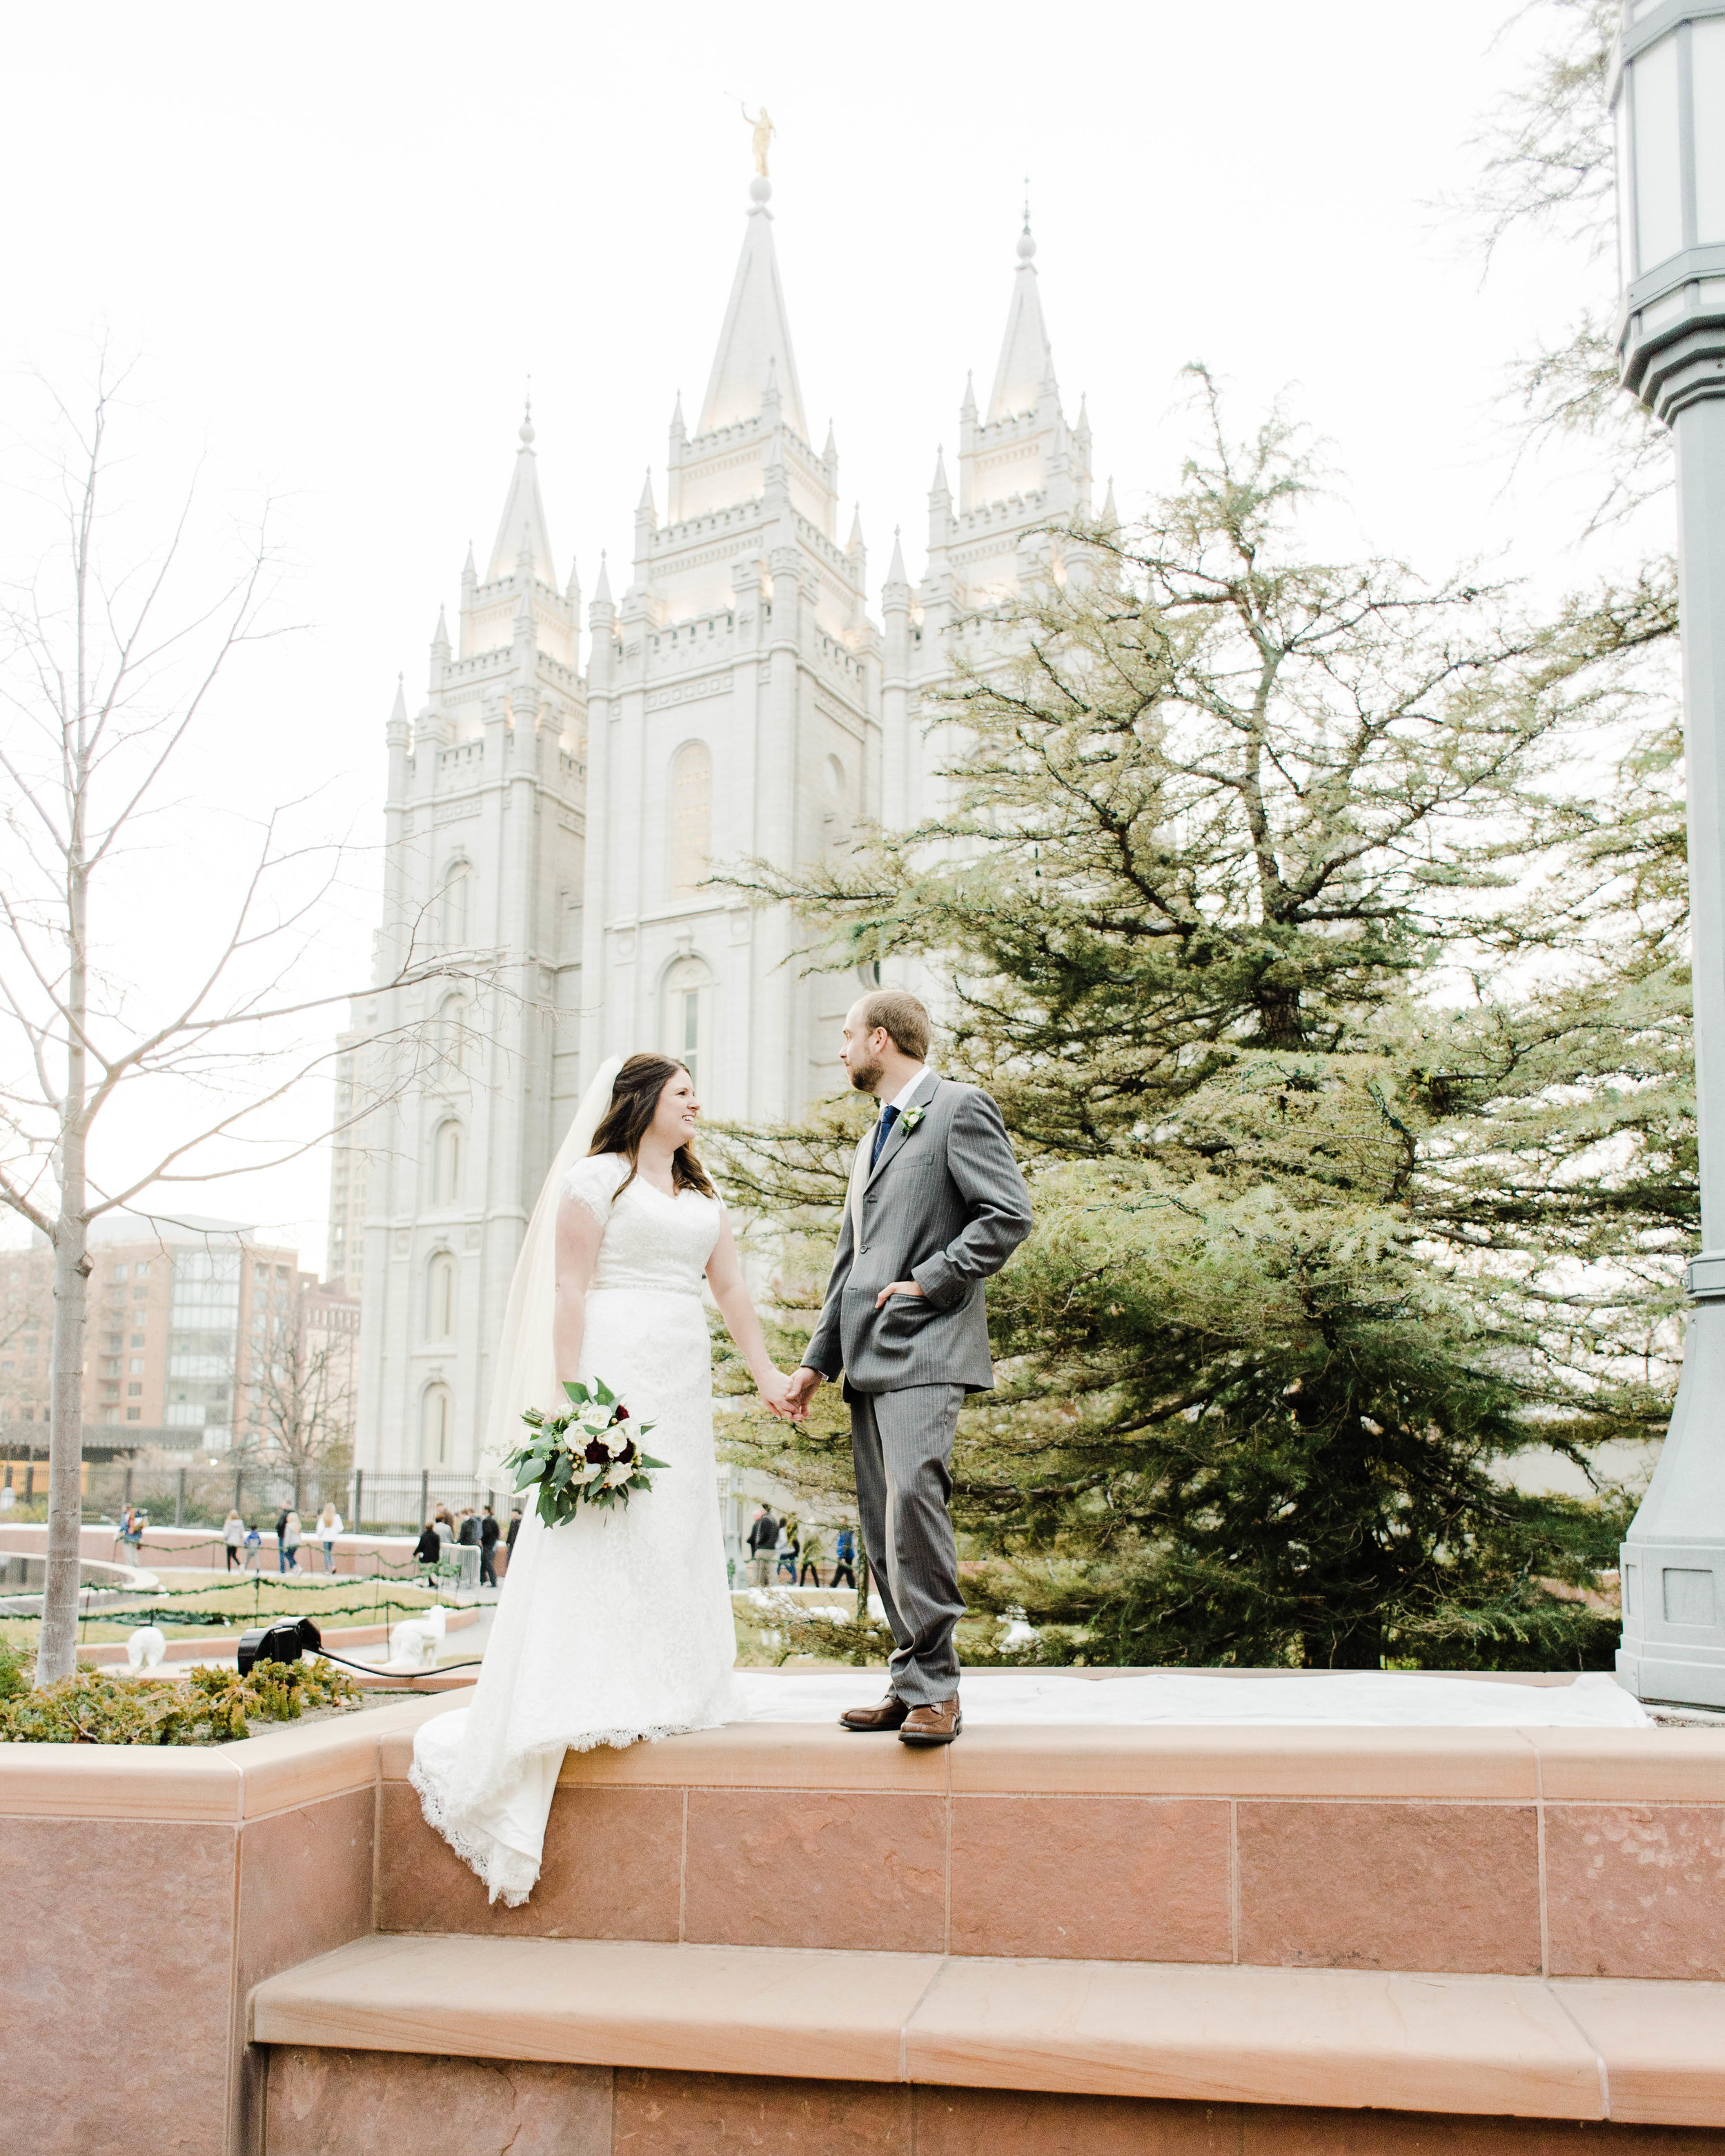 LINDSAY+BRAD-BRIDALS-Sadie_Banks_Photography-191.jpg